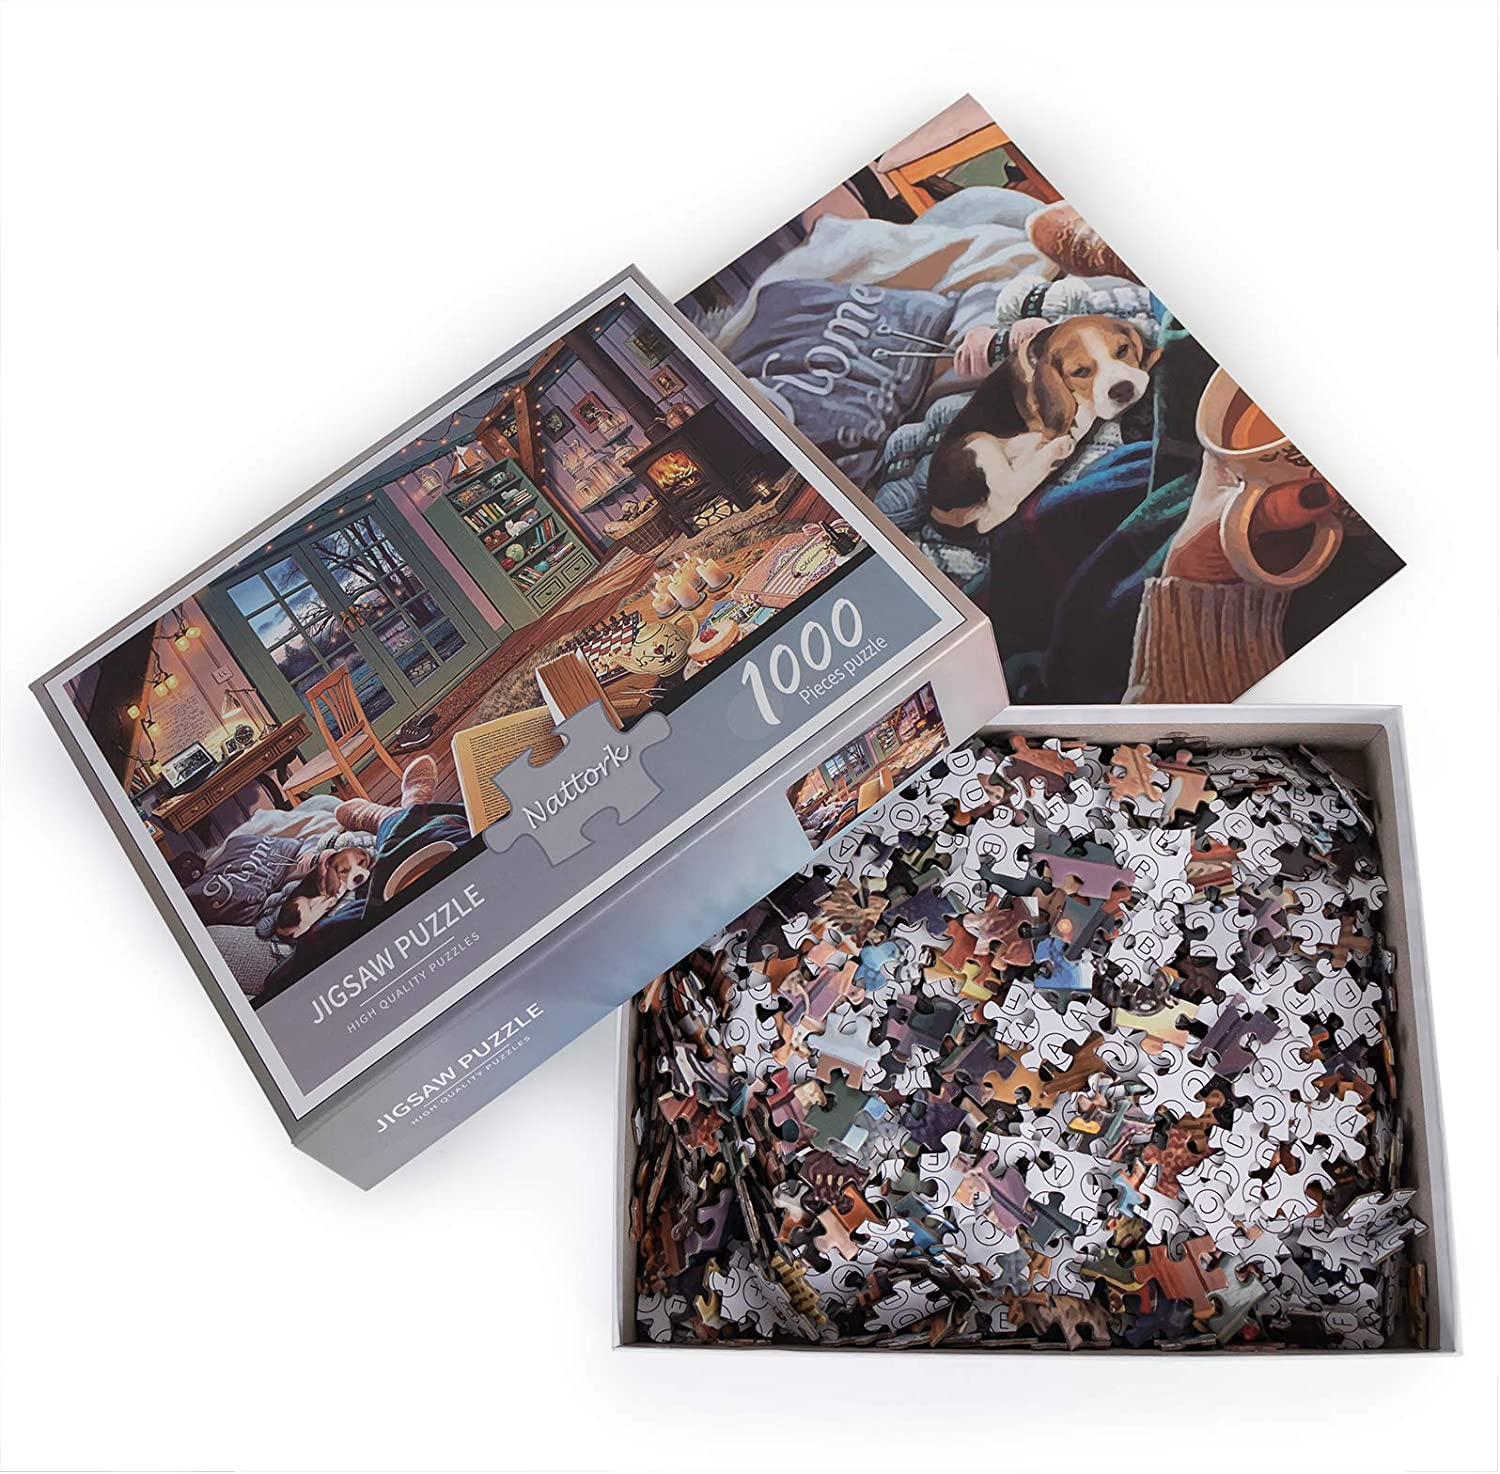 Nattork Cozy Room Jigsaw Puzzle 1000 Piece Puzzle for Adult and Kids